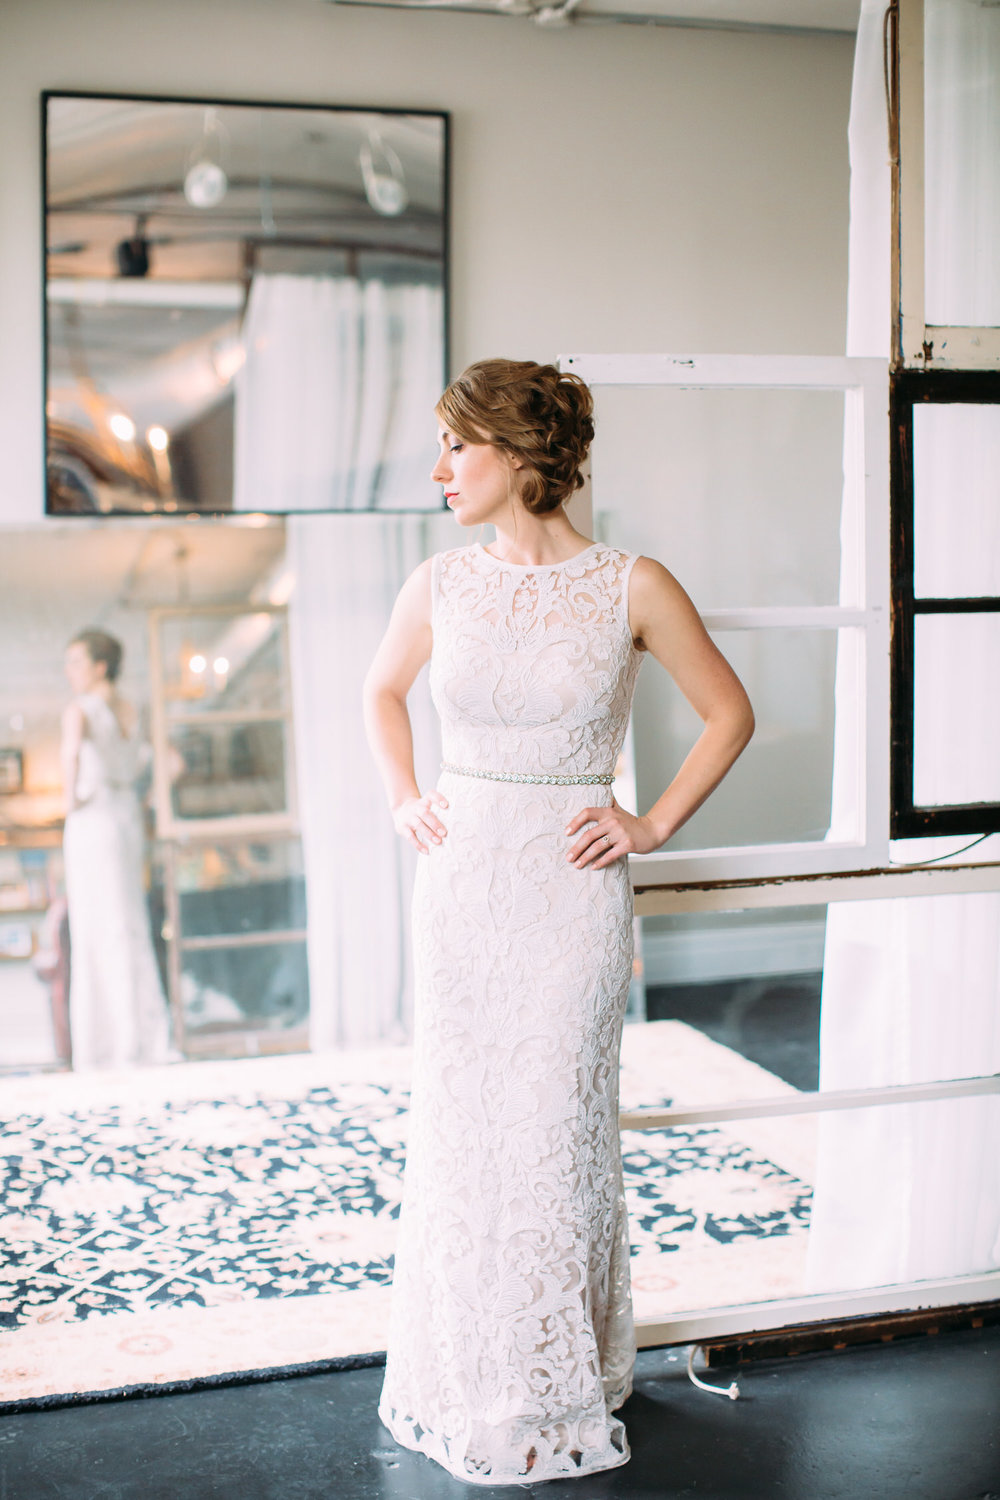 St Louis Modern Bride. Wedding photographer